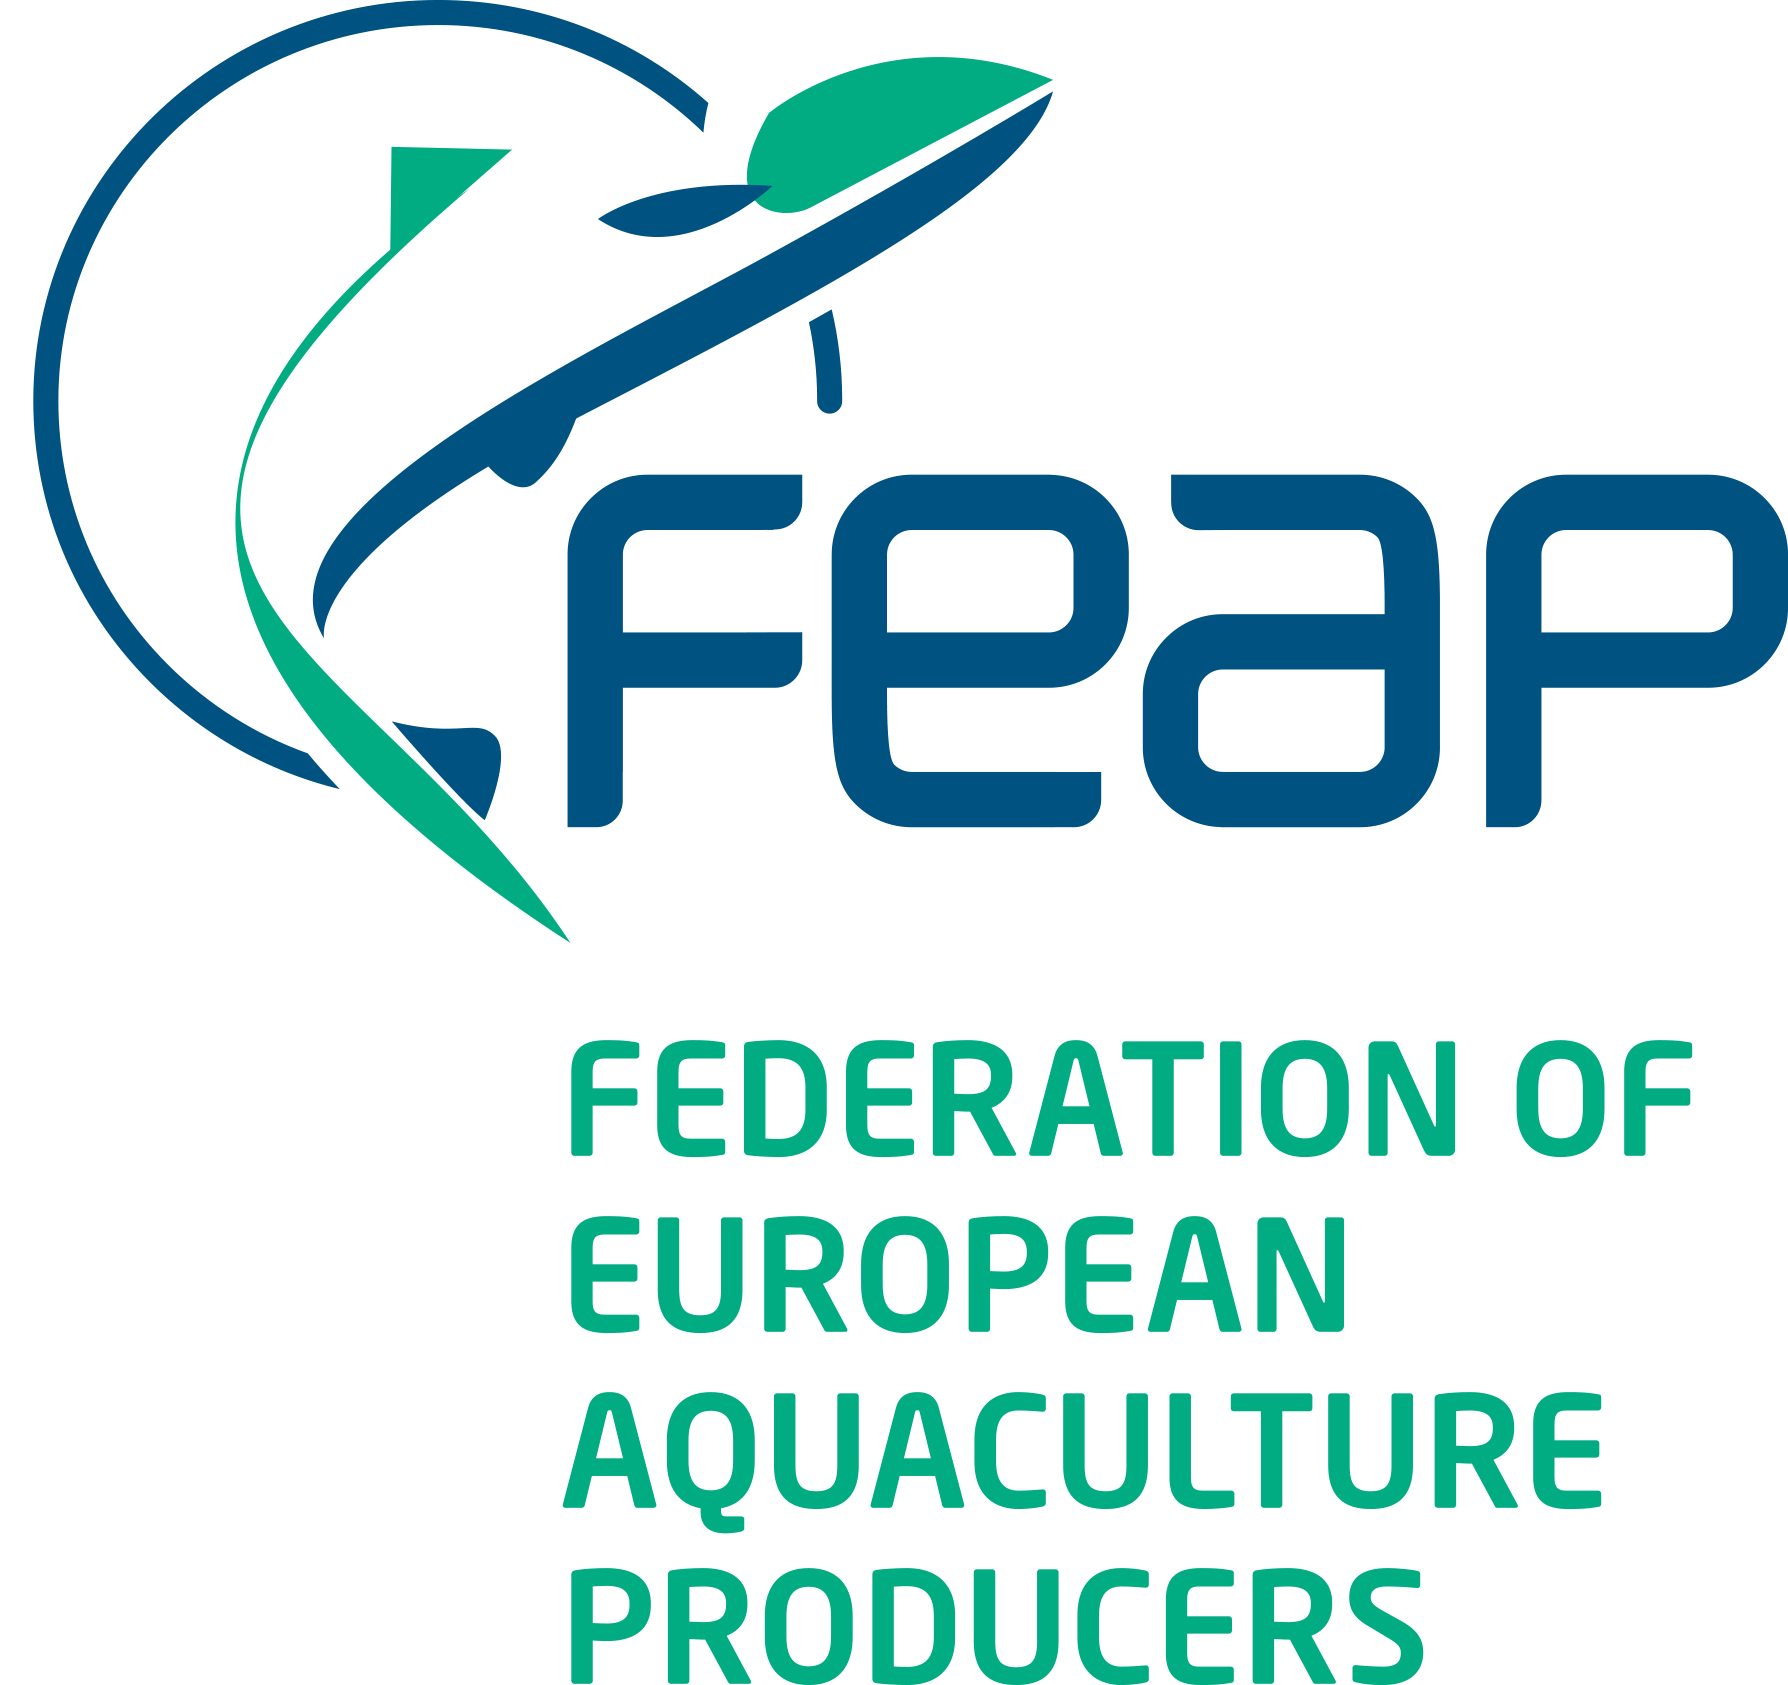 The Federation of European Aquaculture Producers